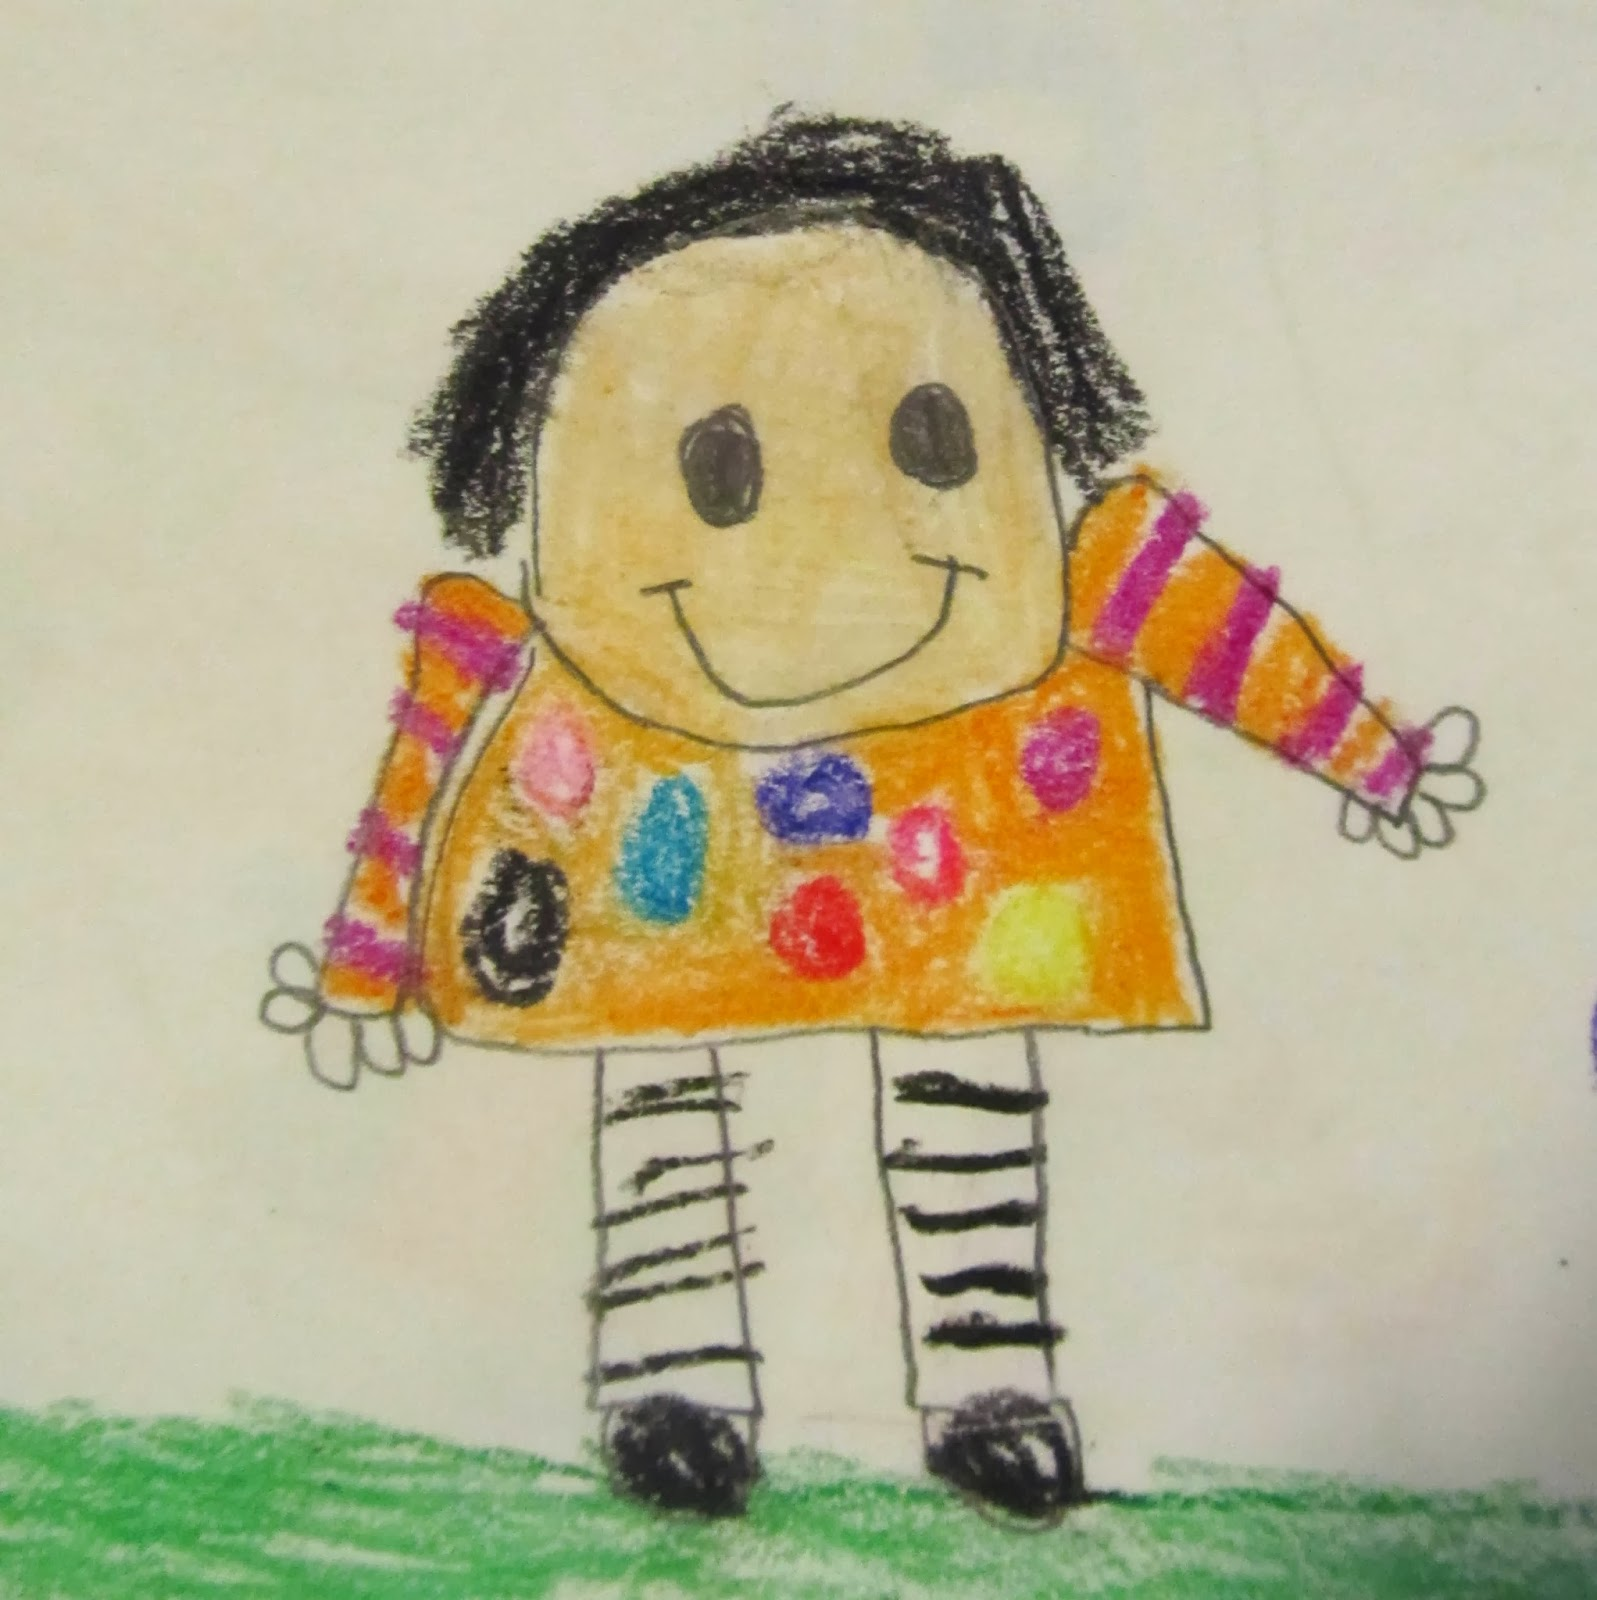 Debbie Clement portrait through the eyes of a Kinder Kiddo